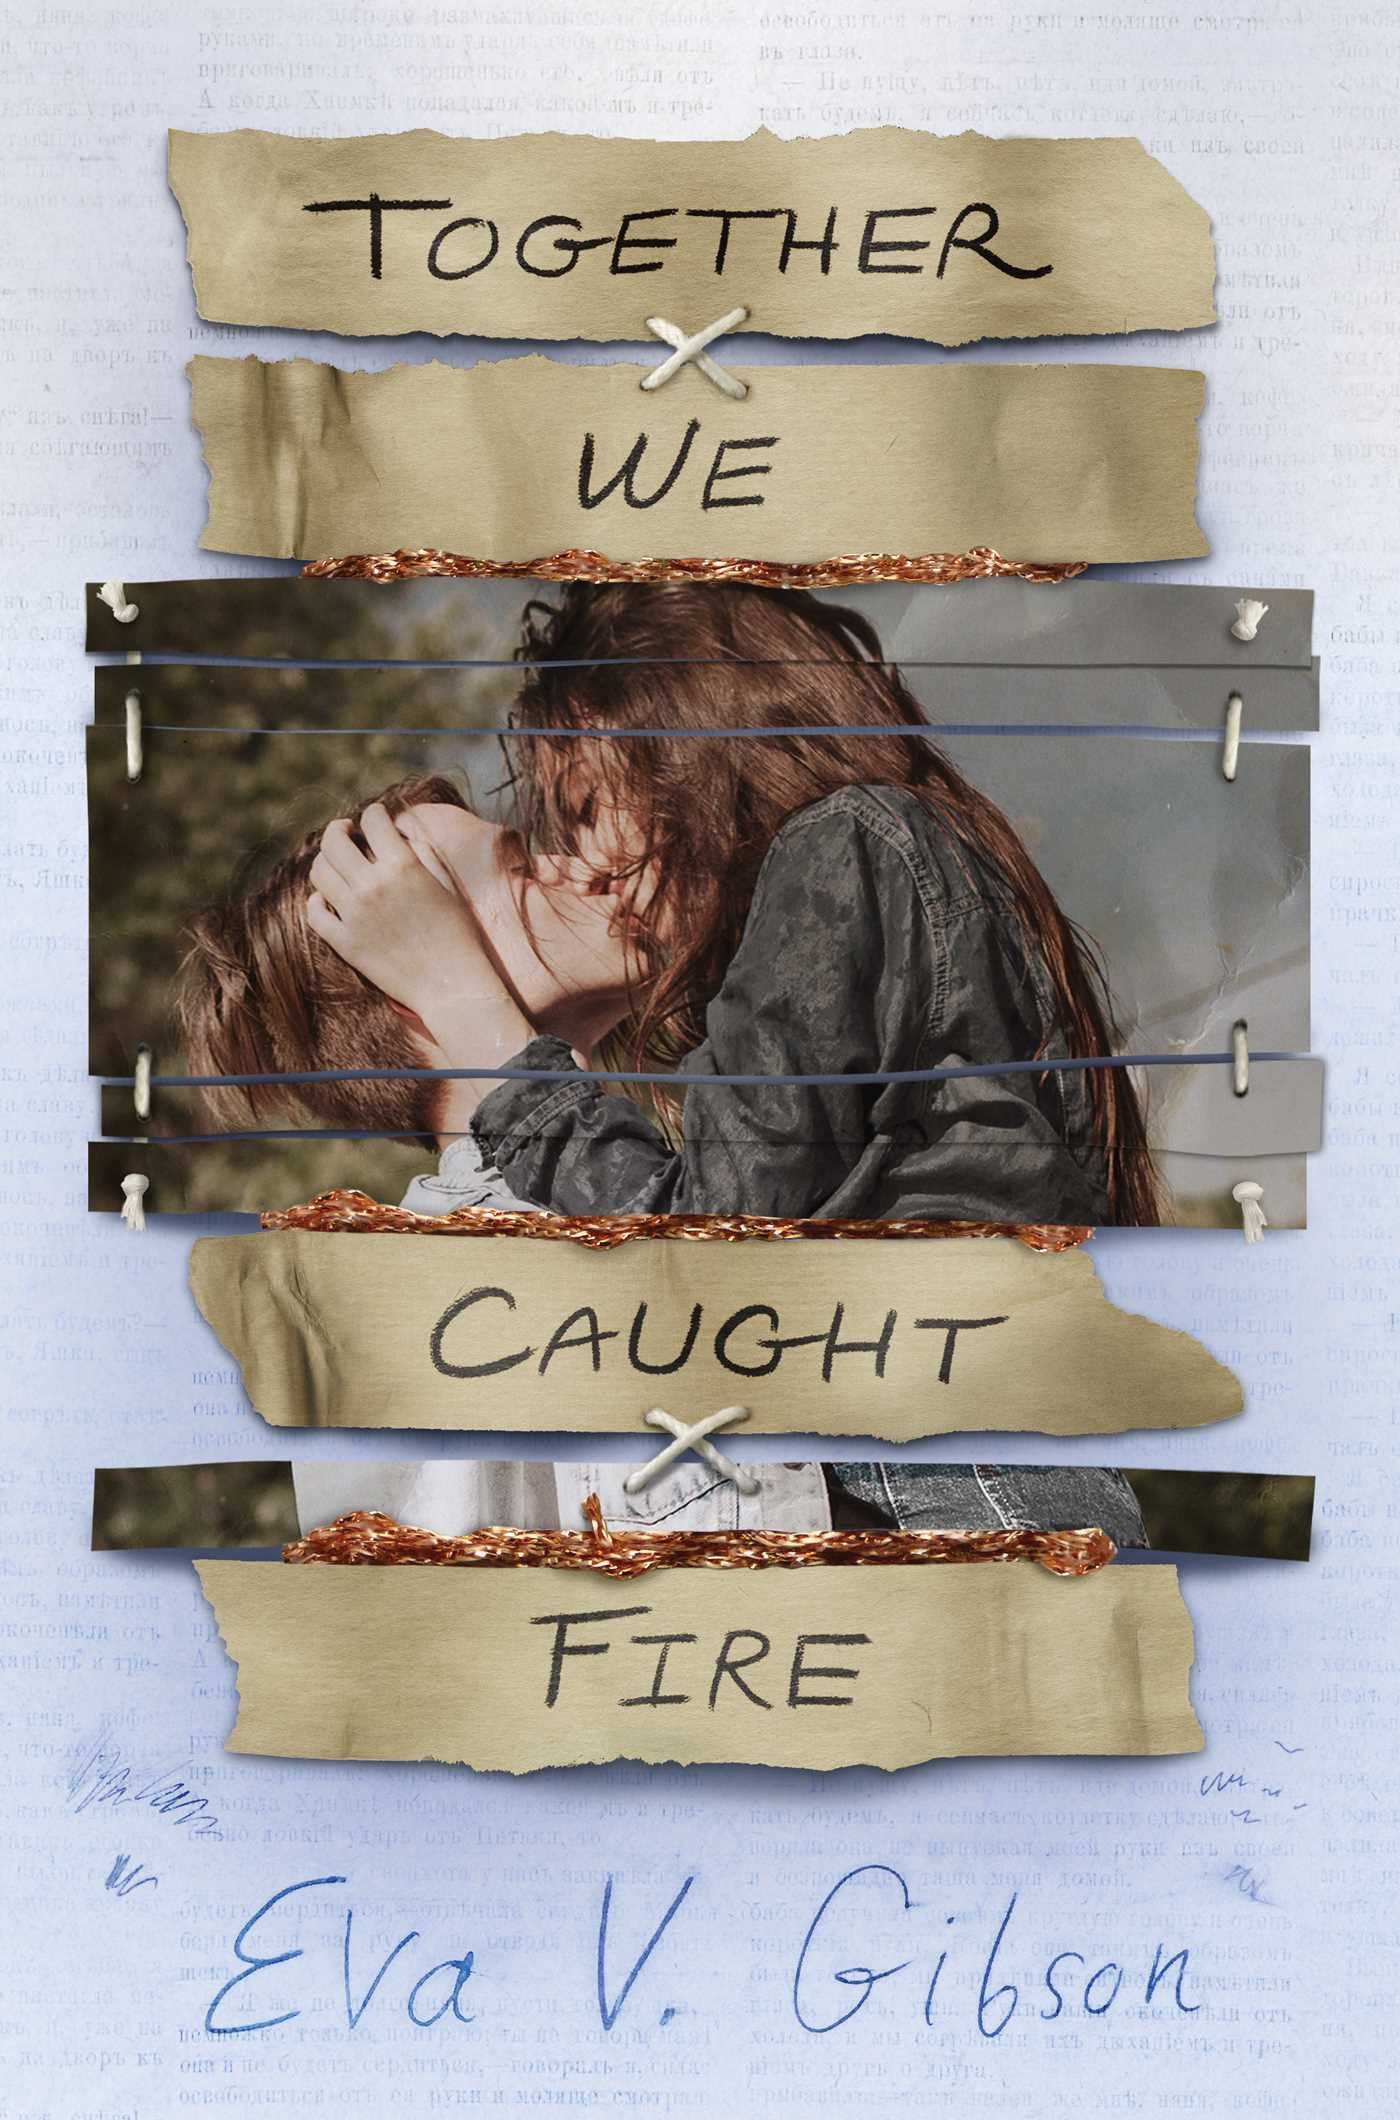 Together We Caught Fire - Eva V. Gibson